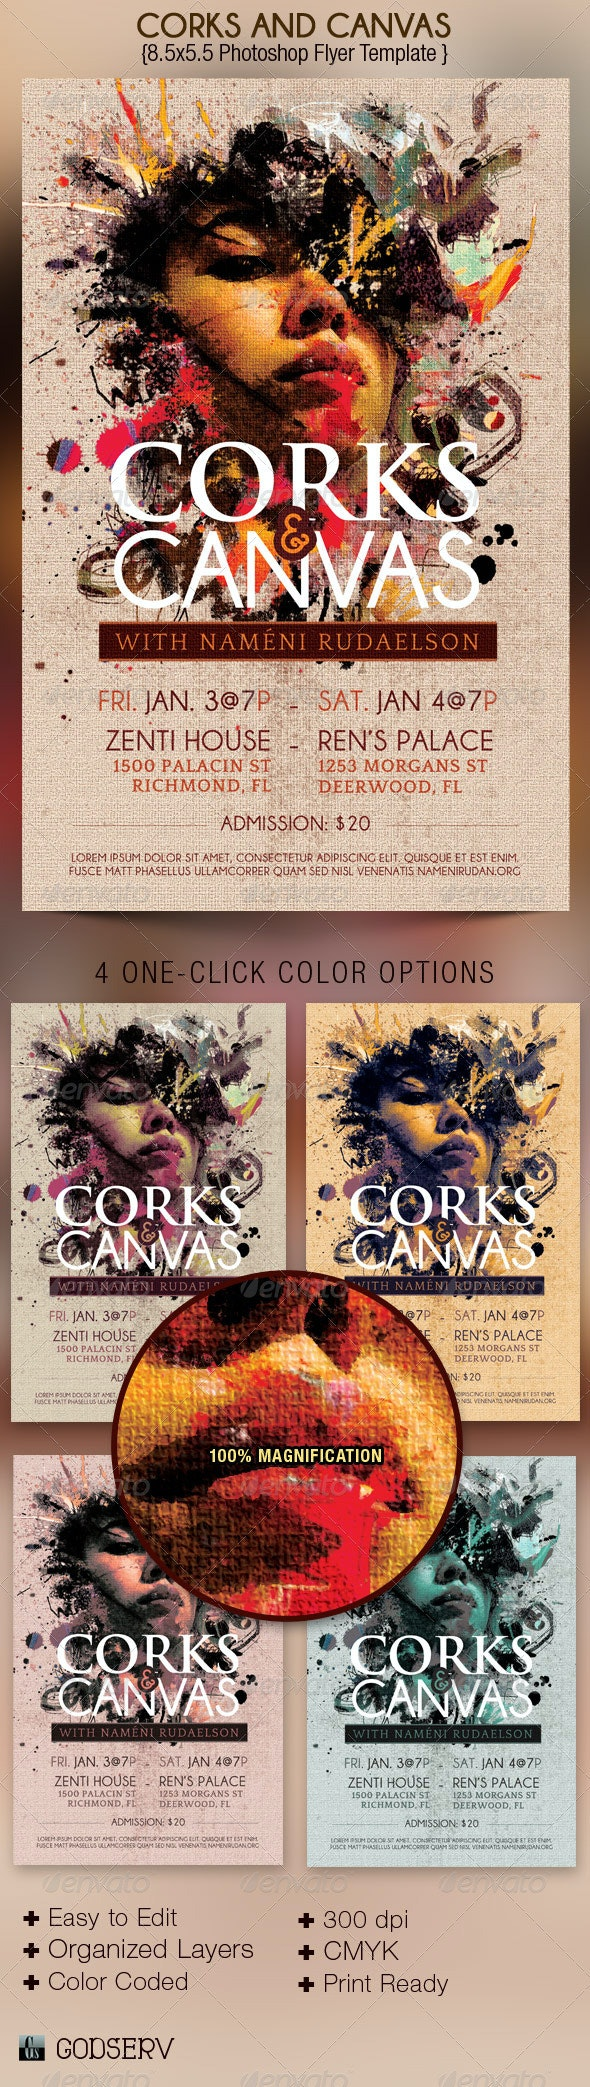 Corks Canvas Art Event Flyer Template - Events Flyers